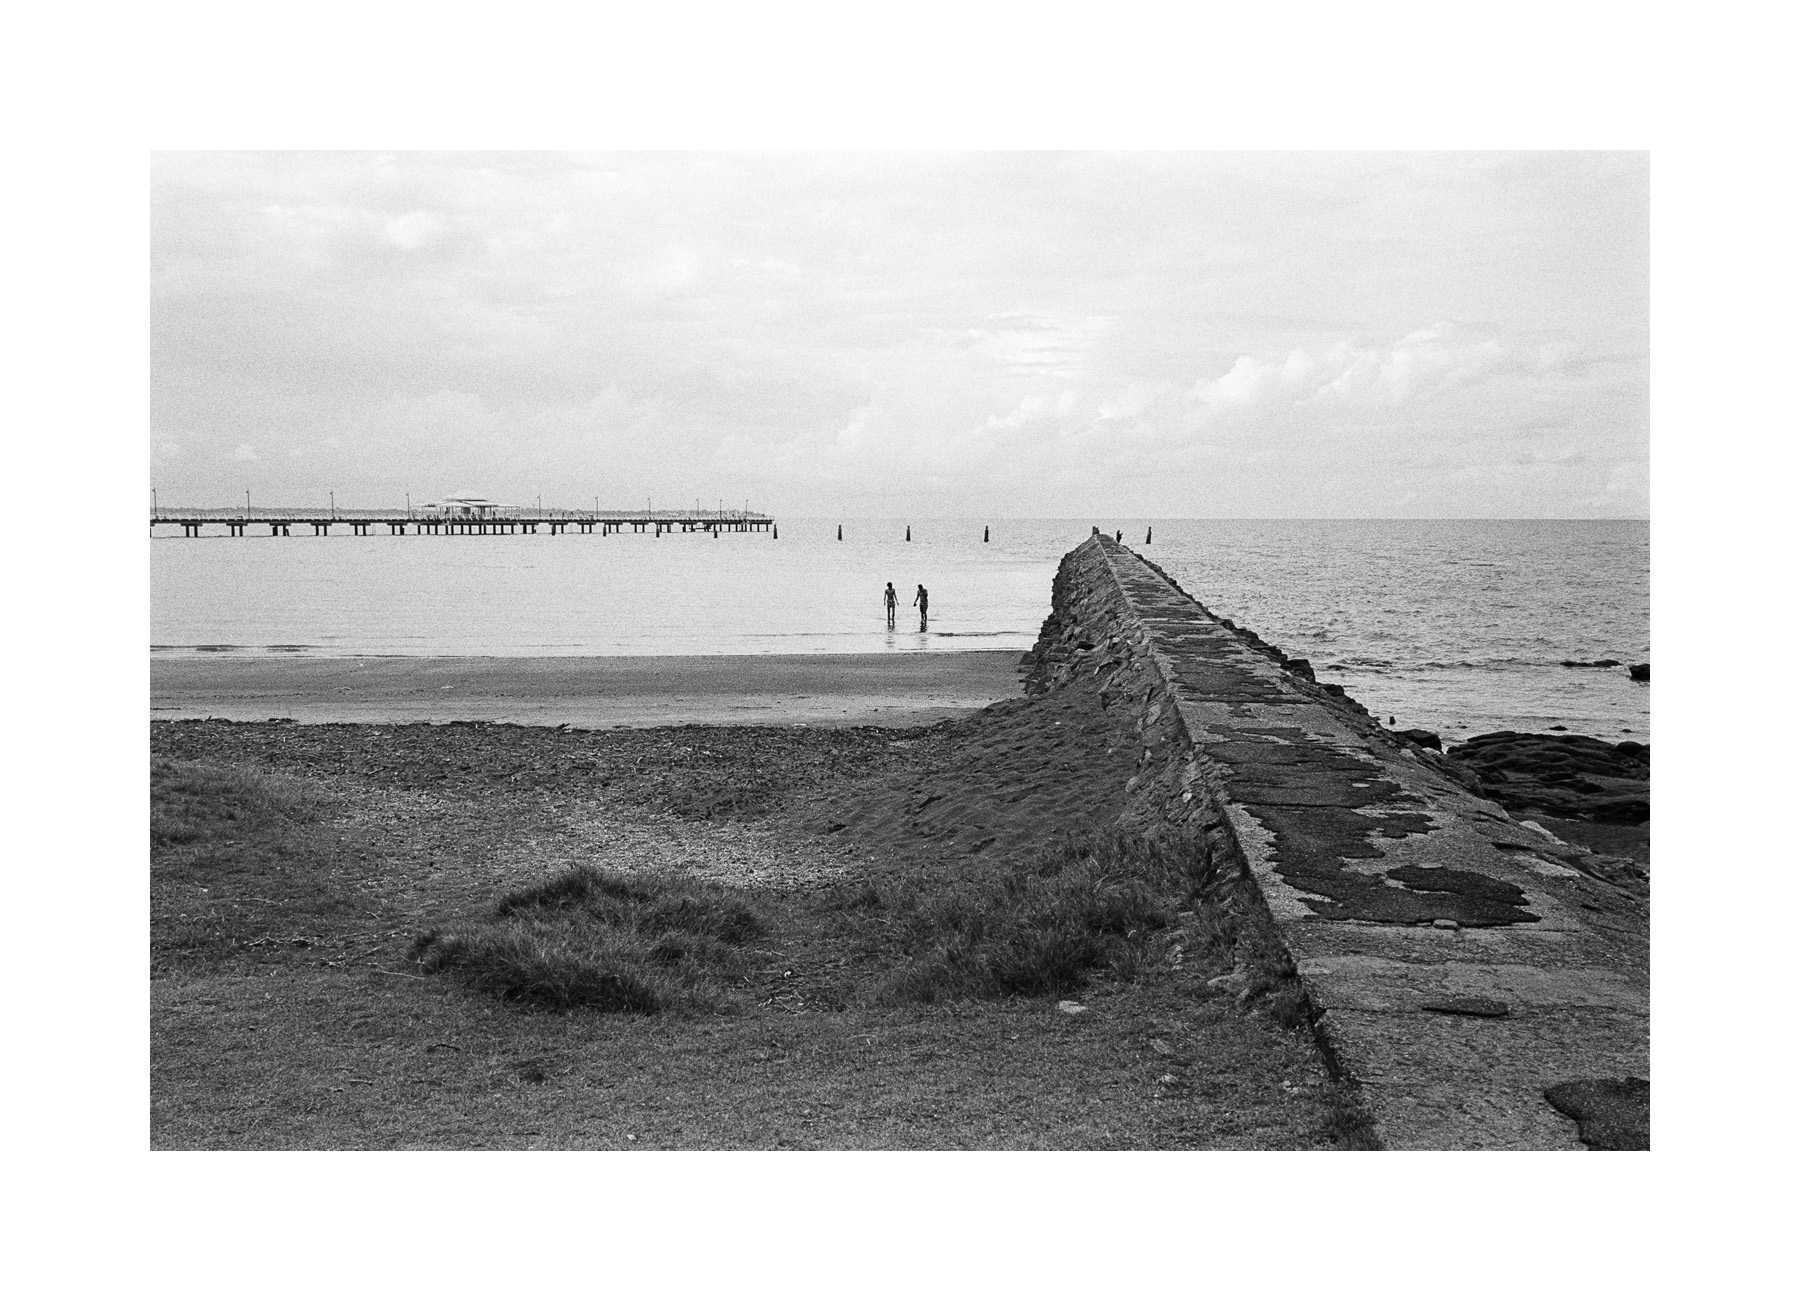 2018106 - Roll 252 - 030-Nick-Bedford,-Photographer-Black and White, Kodak TRI-X 400, Landscape Photography, Leica M7, Seascape, Shorncliffe, Voigtlander 35mm F1.7.jpg